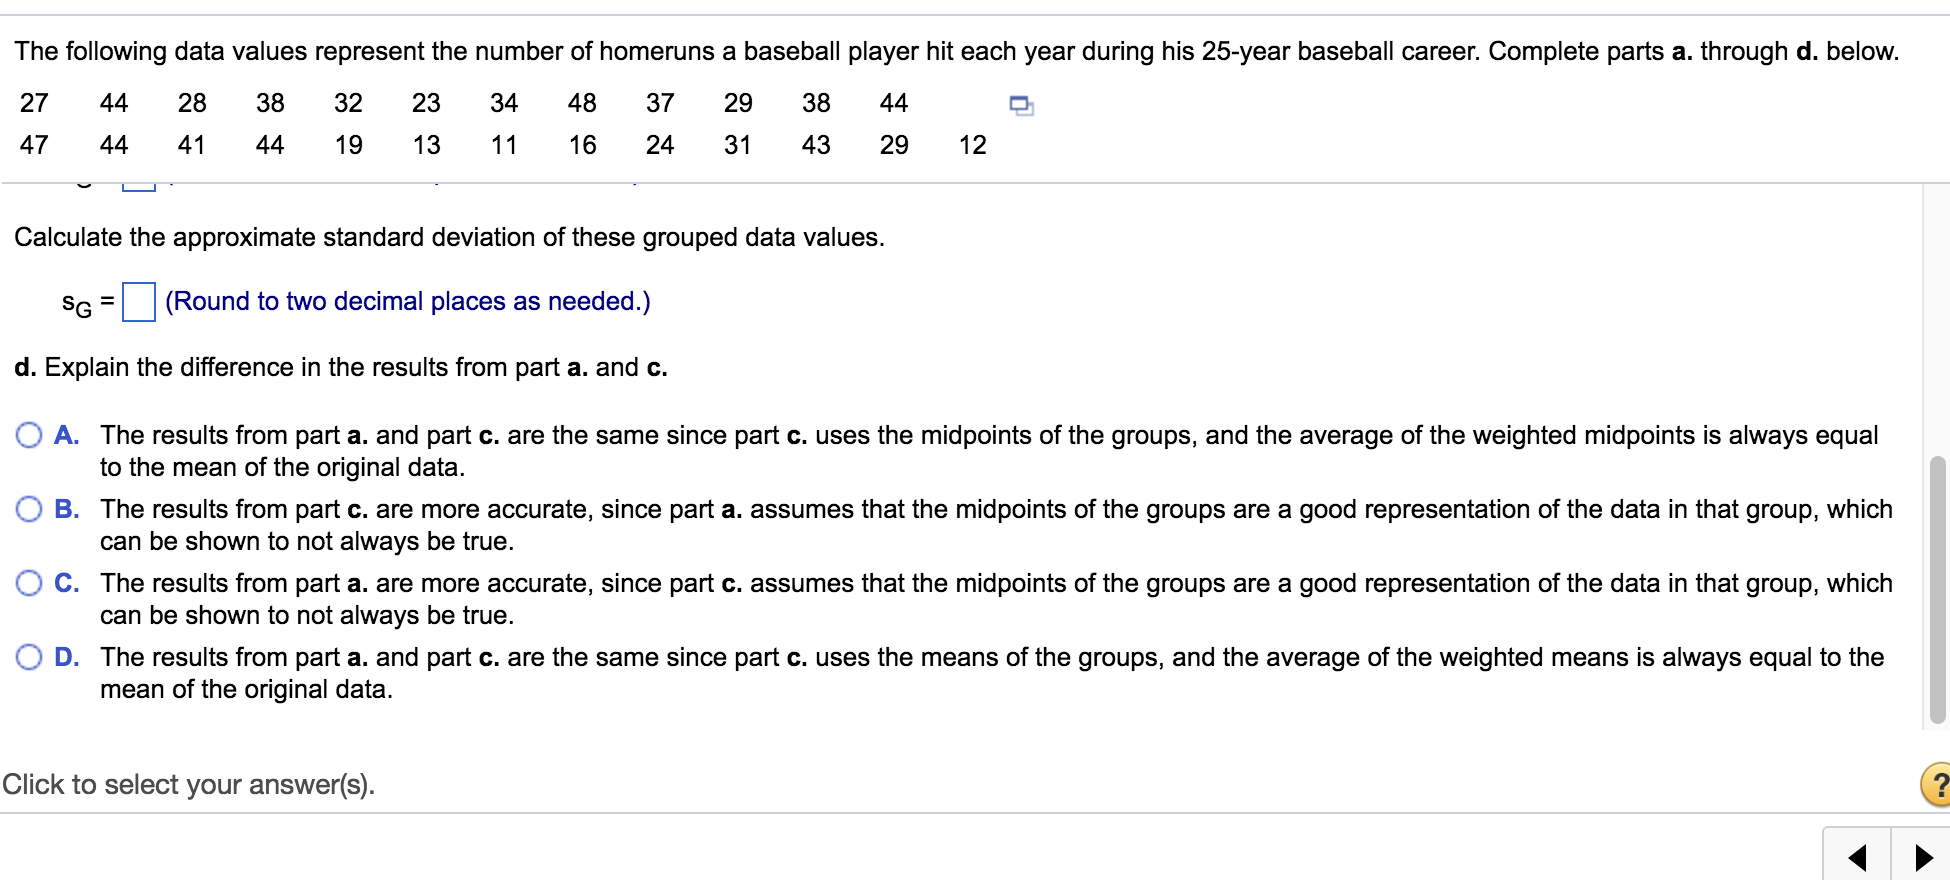 The Following Data Values Represent The Number Of Homeruns A Baseball  Player Hit Each Year During